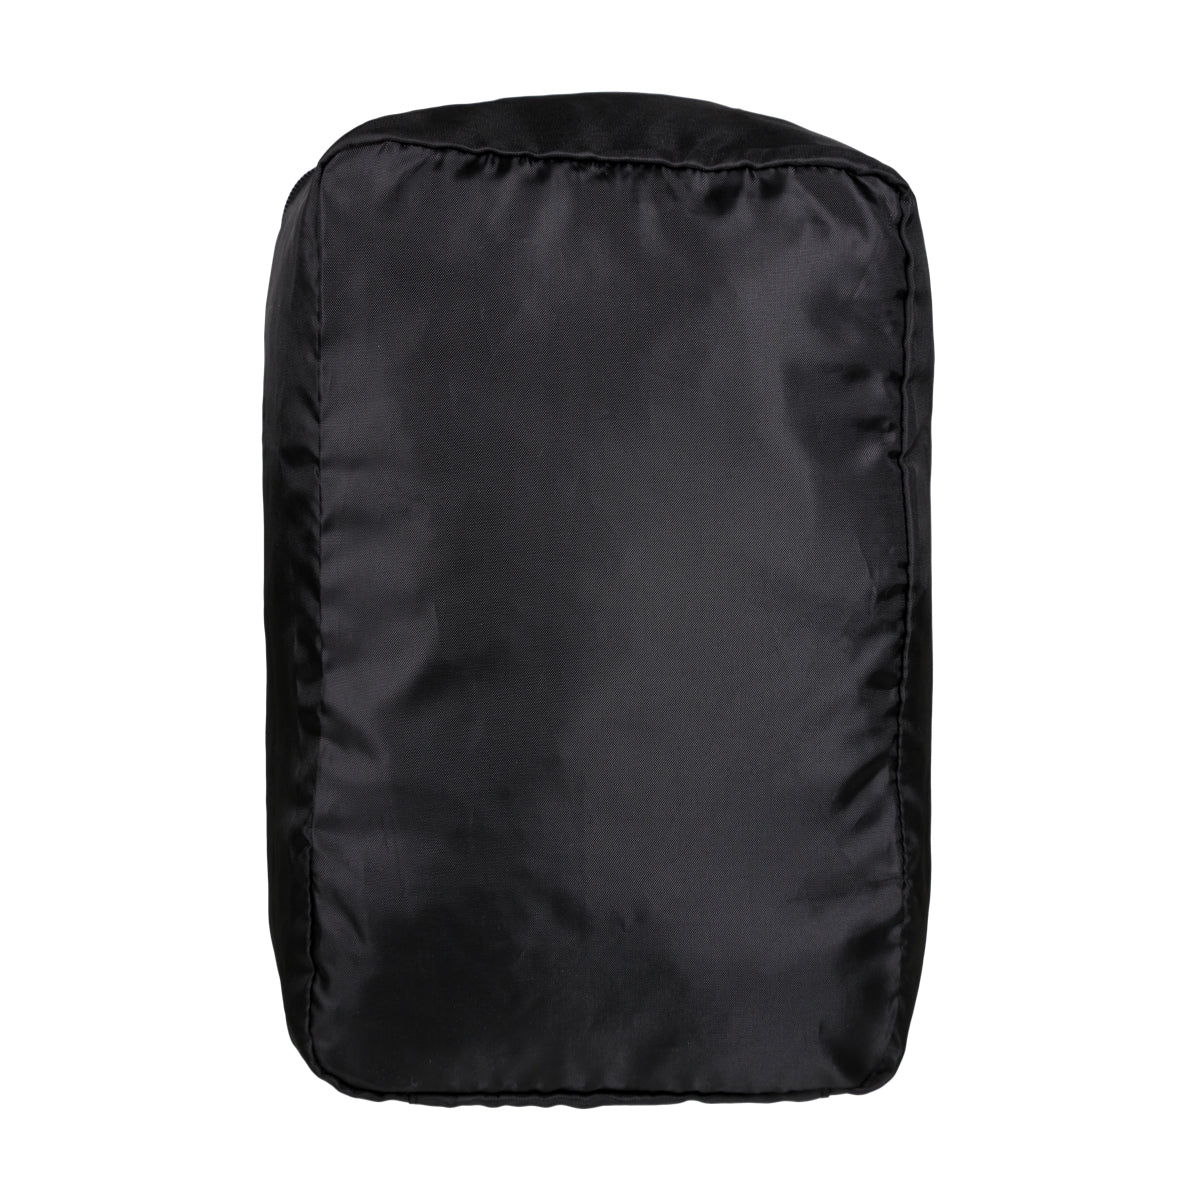 Collective Packing Cube Medium - Black image 3